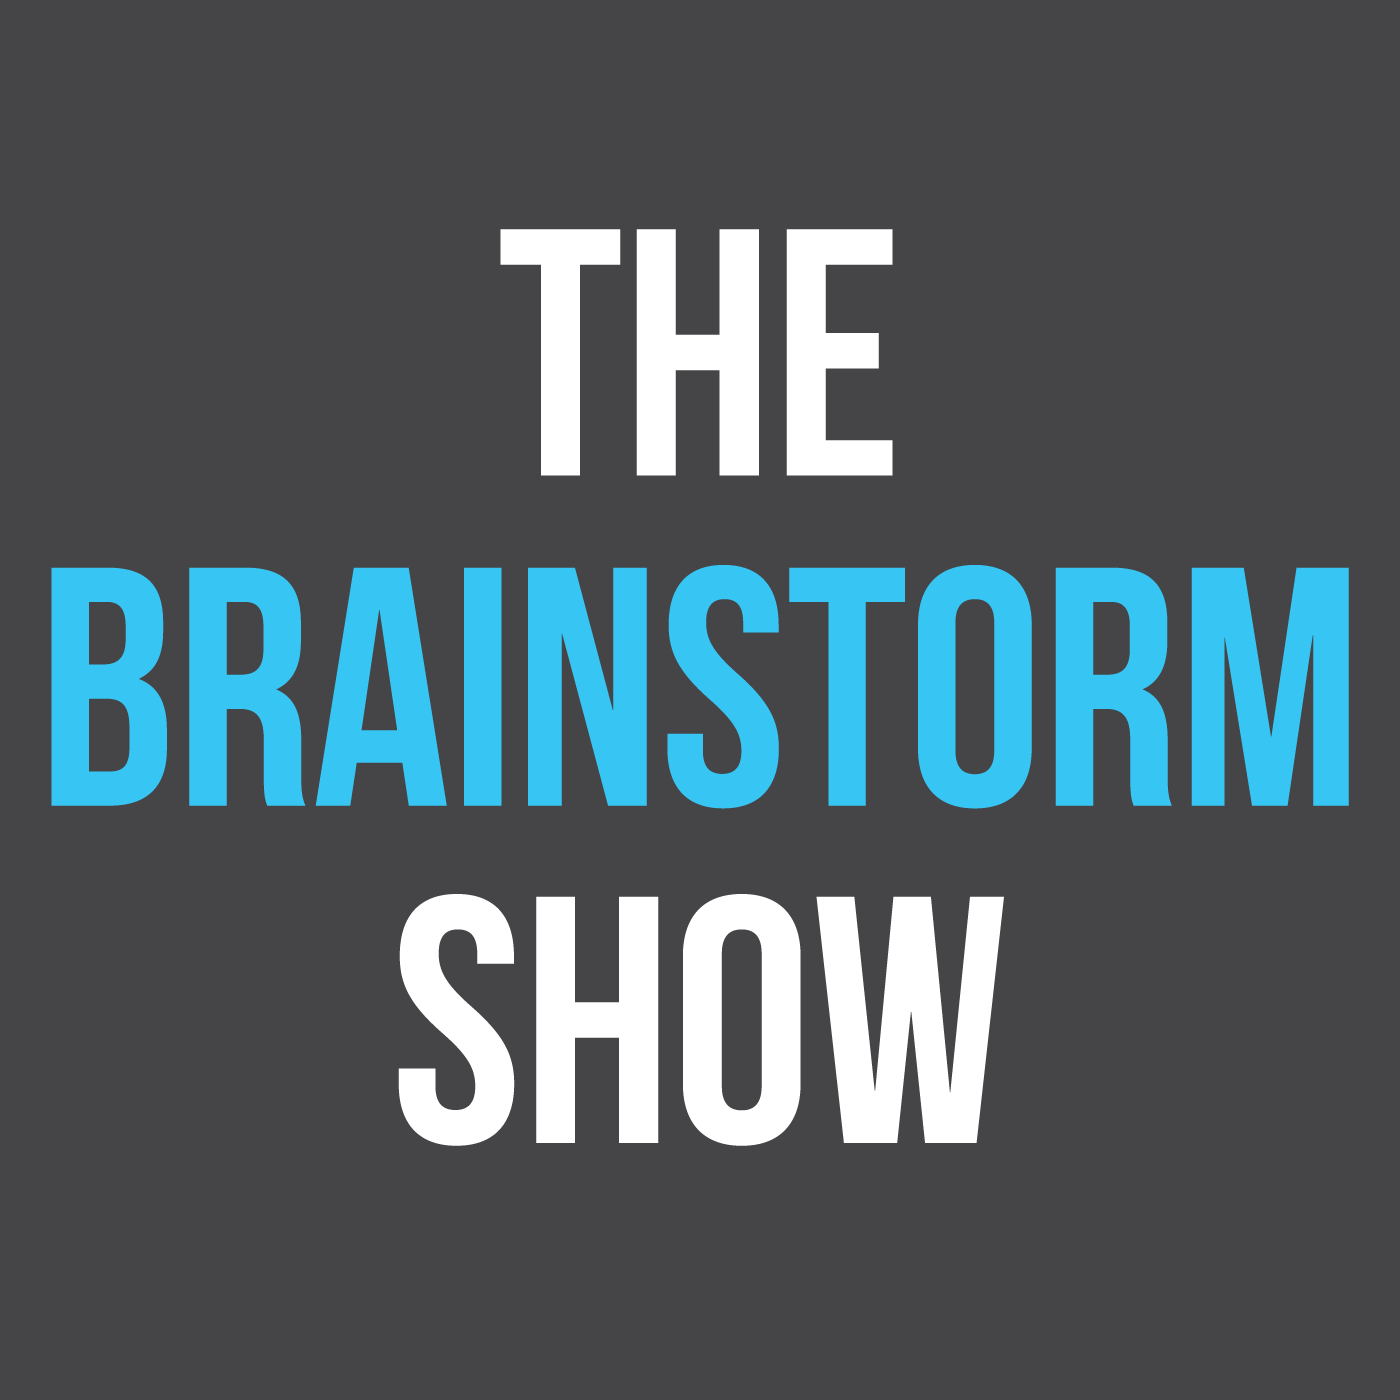 The Brainstorm Show